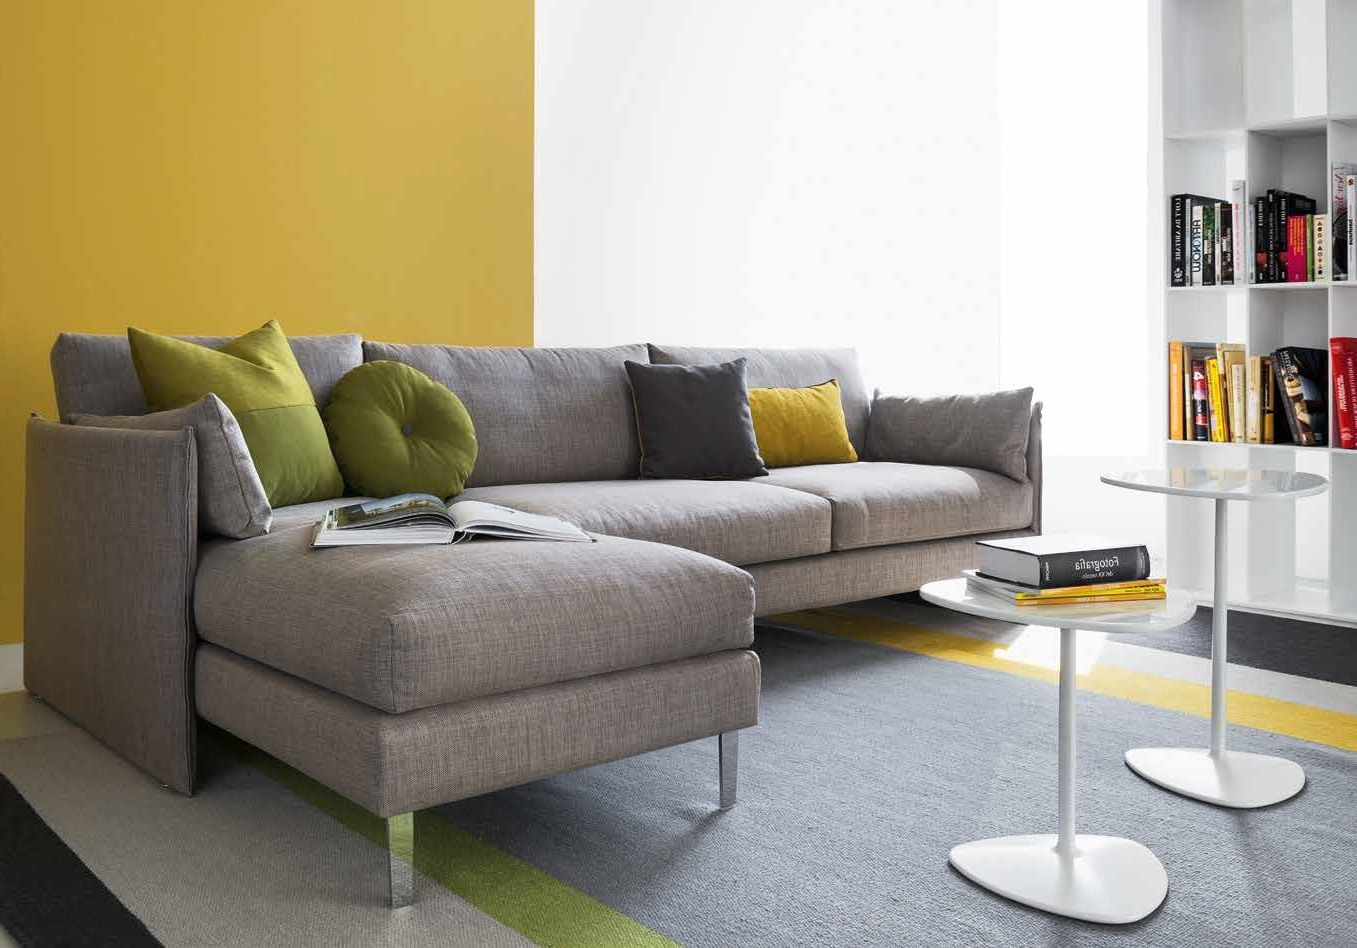 Urban Sectional Sofa Cs/3369, Calligaris Italy – Italmoda With Regard To Famous Nashua Nh Sectional Sofas (Gallery 4 of 20)